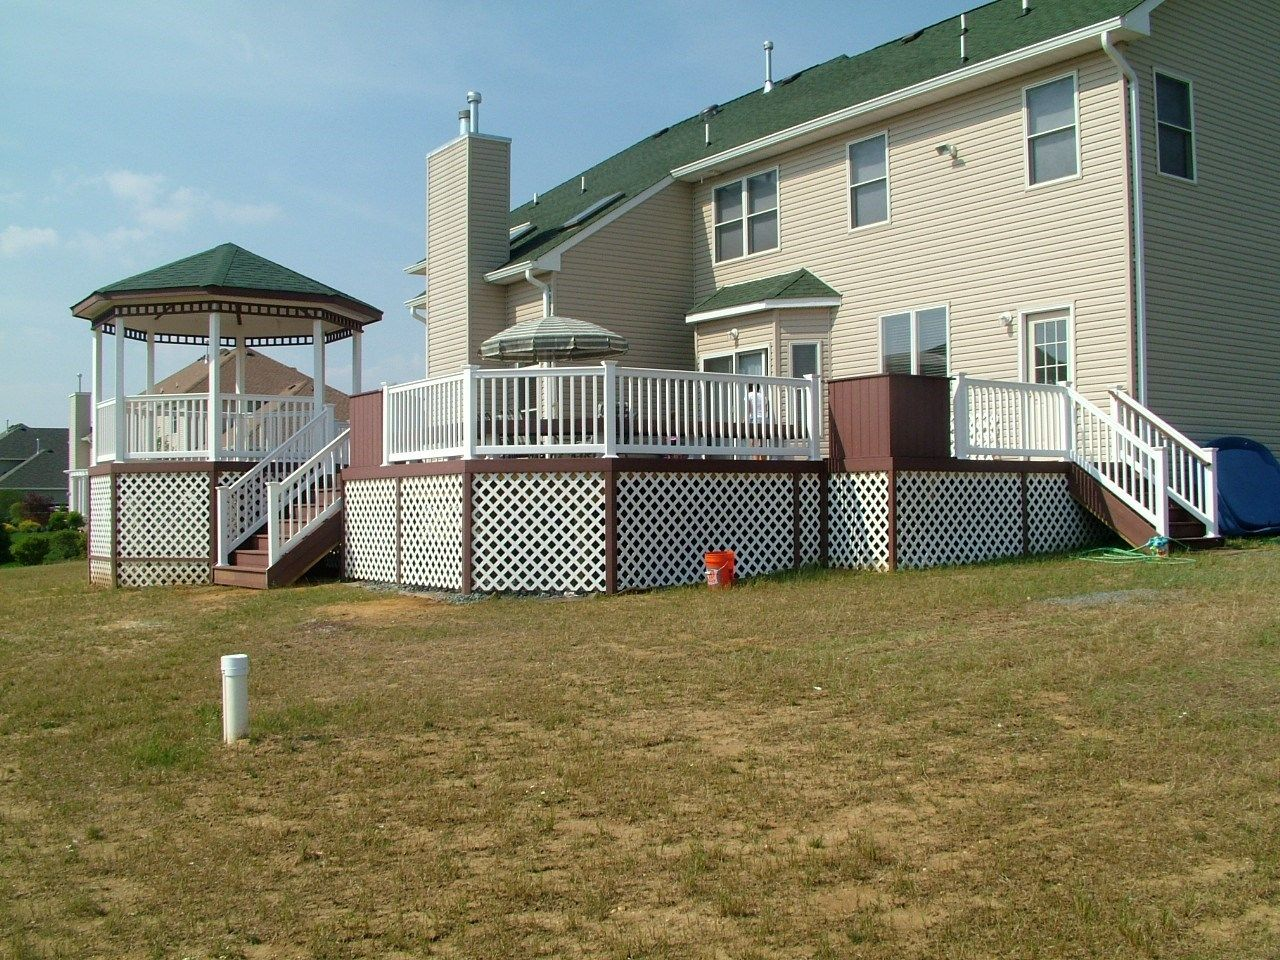 Custom Gazebo deck in Millstone NJ - Picture 3401